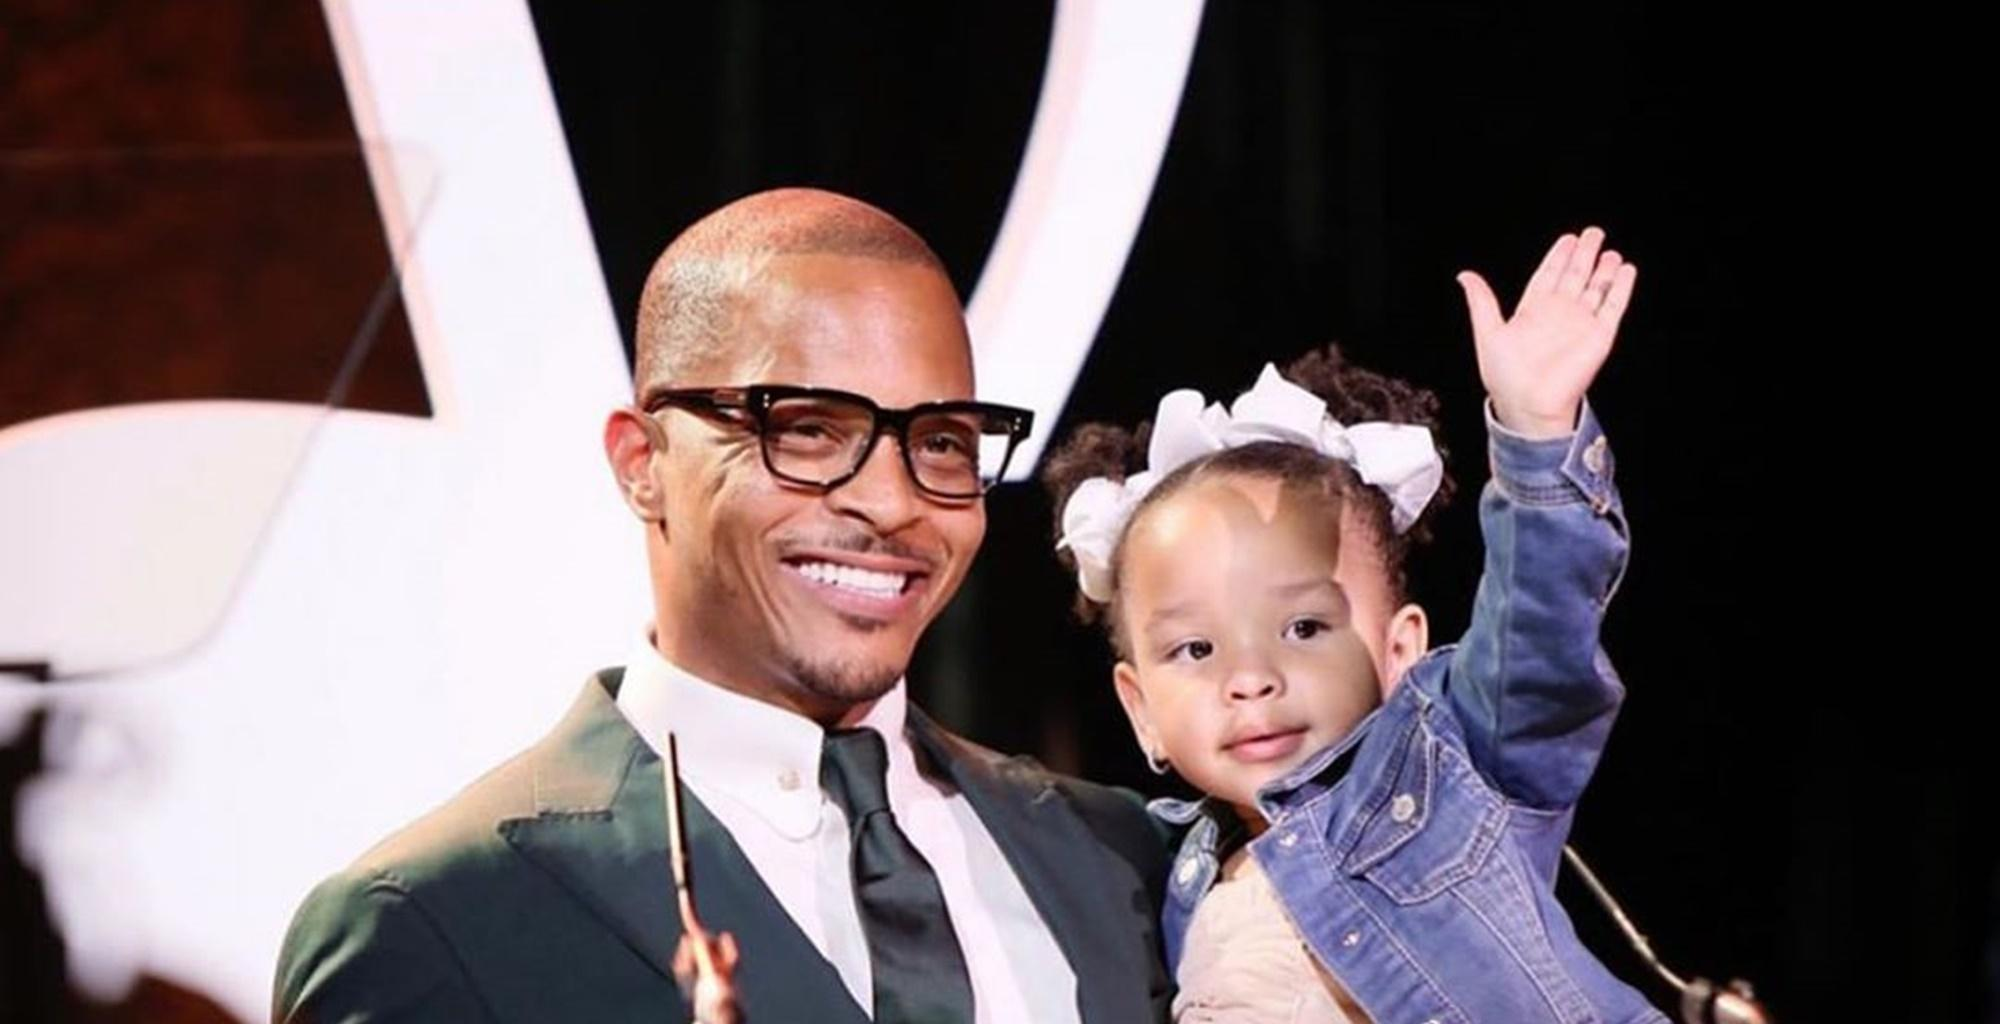 T.I.'s Daughter, Heiress, Lands Her First Big Job In Showbiz -- Tiny Harris' Child Poses In New Pictures Where She Is Compared To Raven-Symoné